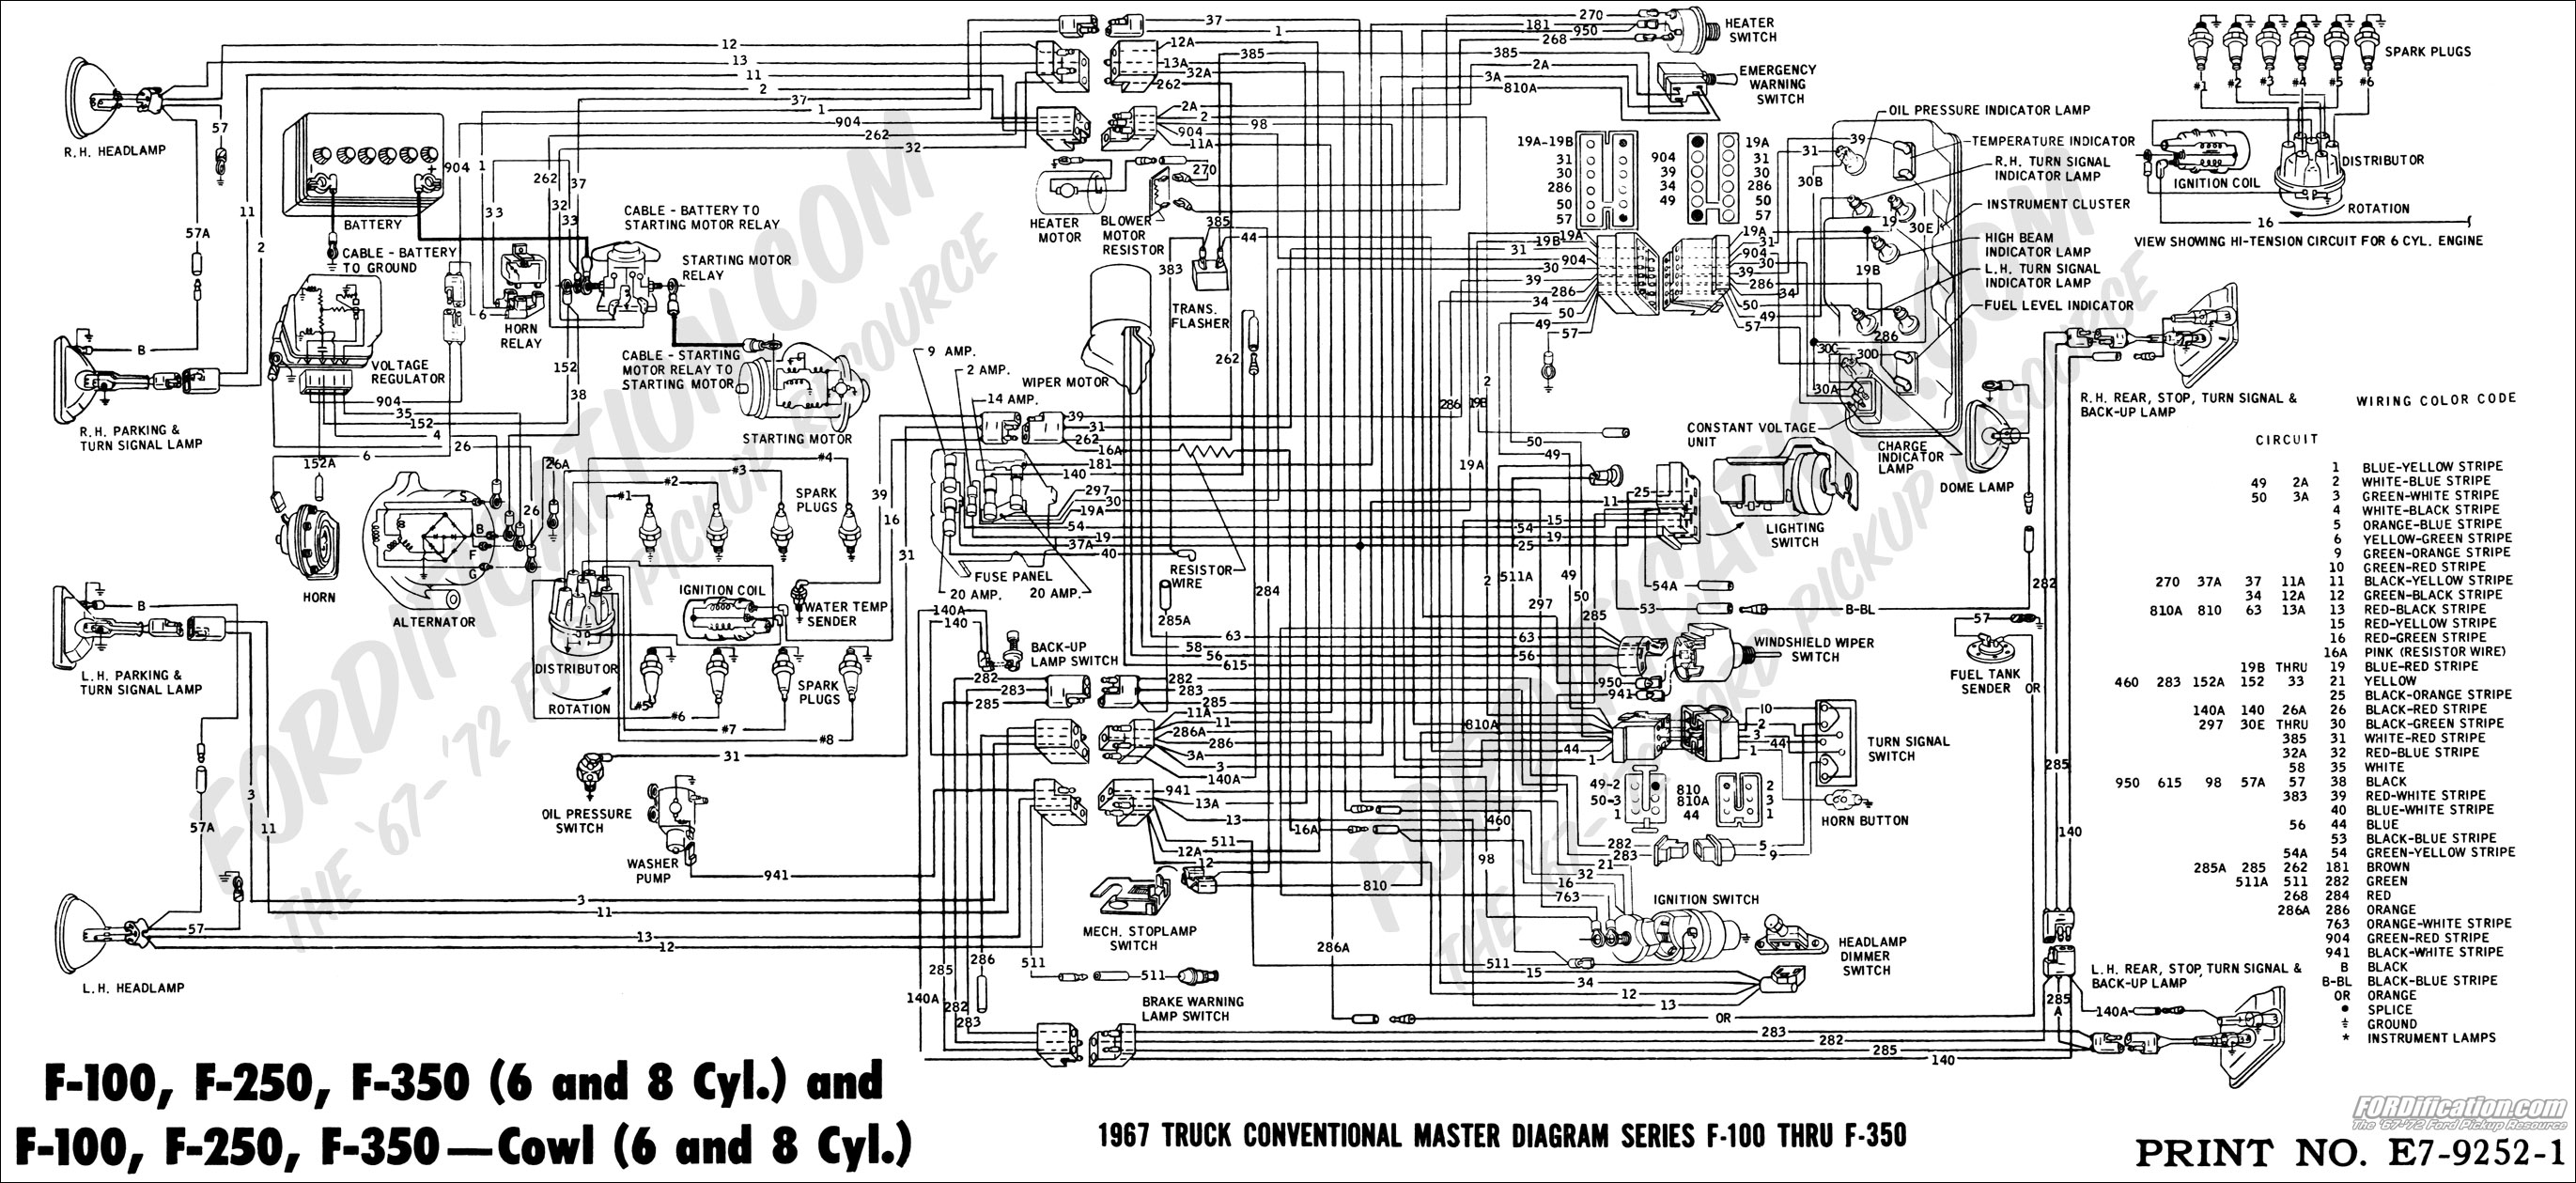 67masterdiagram ford truck technical drawings and schematics section h wiring ford wiring schematics at readyjetset.co